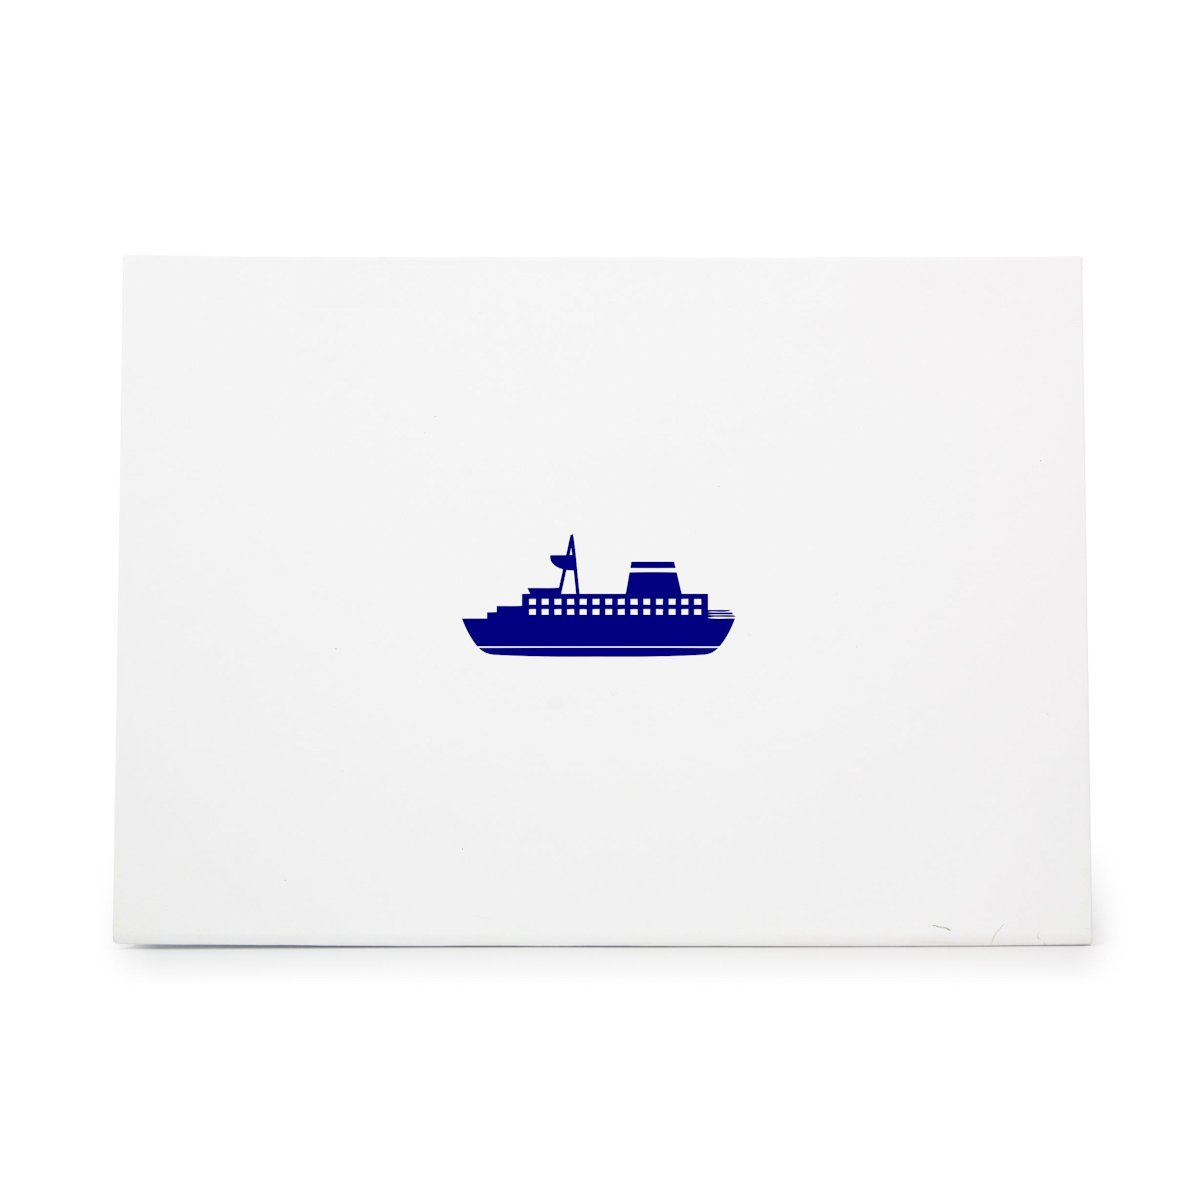 Crafts Card Making Ink Stamping Crafts Rubber Stamp Shape great for Scrapbooking Ship Boat Cruise Sea Travel Style 19504